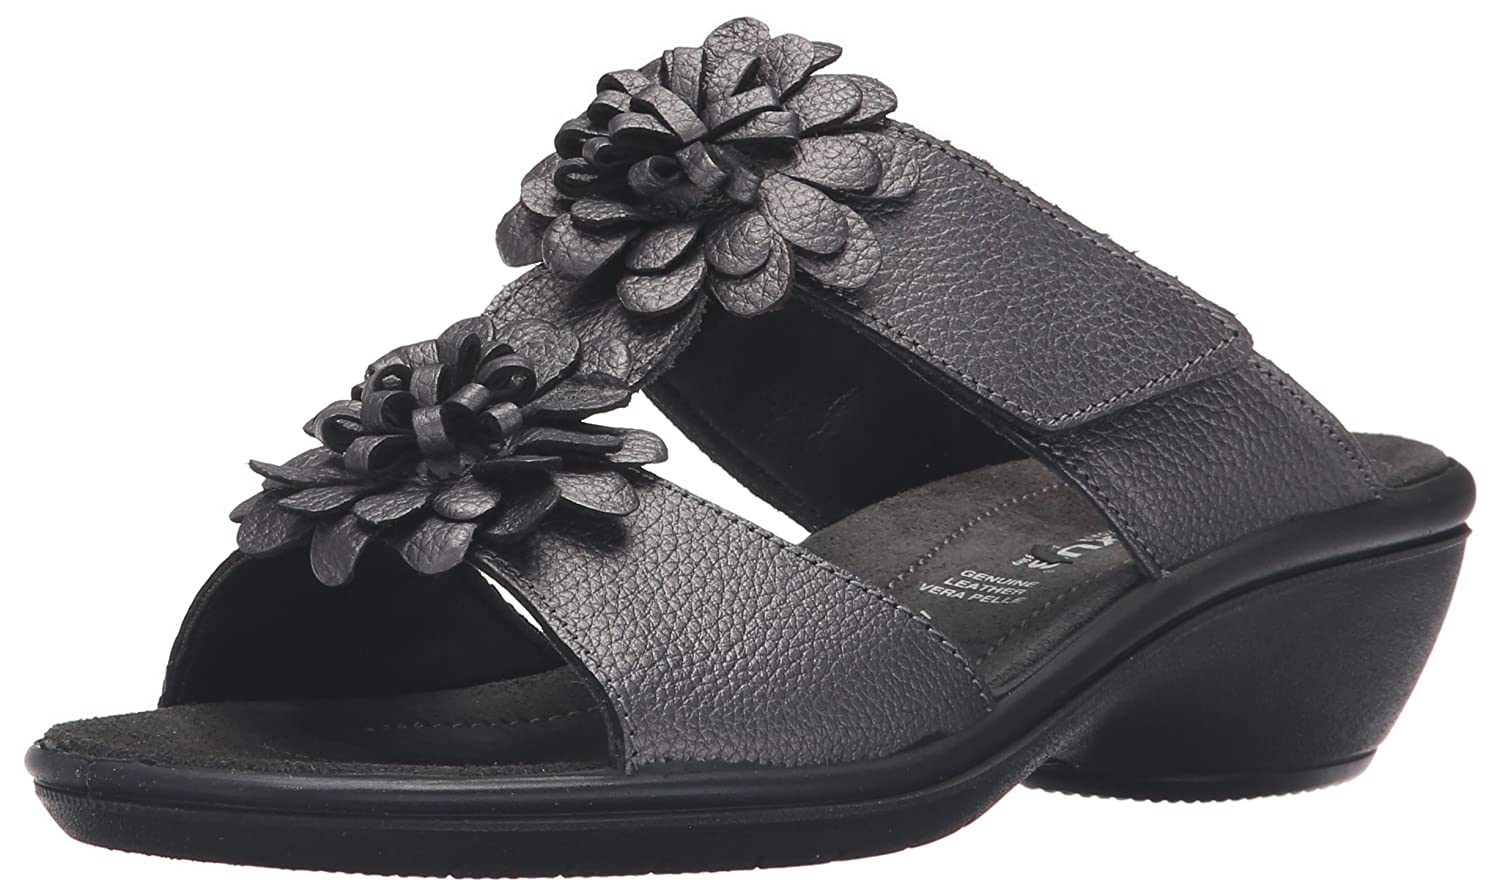 Flexus Womens B019HYCV42 Sp3 Loredana Slide Sandal B019HYCV42 Womens 9.5-10 B(M) US|Pewter 746ac6